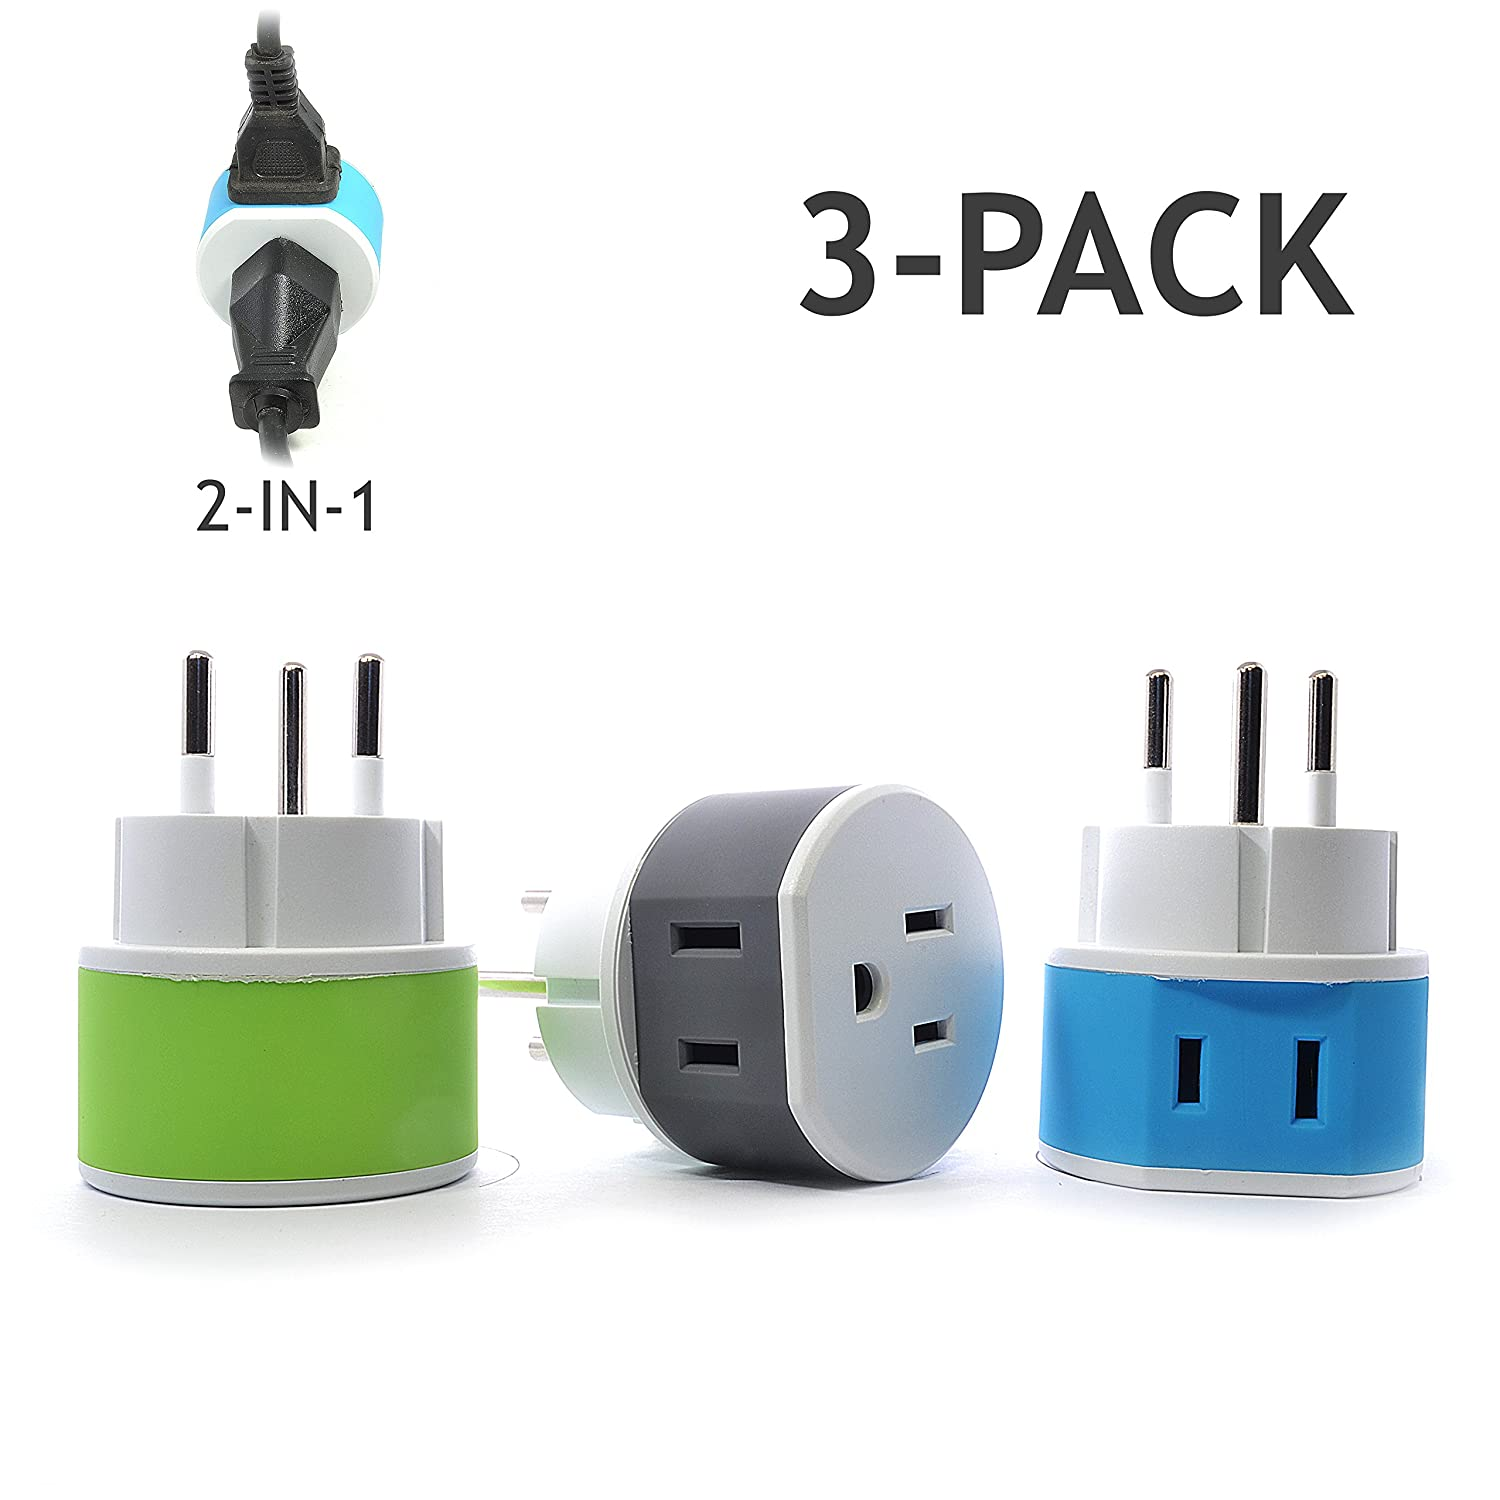 Israel, Palestine Power Plug Adapter by OREI with 2 USA Inputs - Travel 3 Pack - Type H (US-14) Safe Grounded Use with Cell Phones, Laptop, Camera Chargers, CPAP, and More